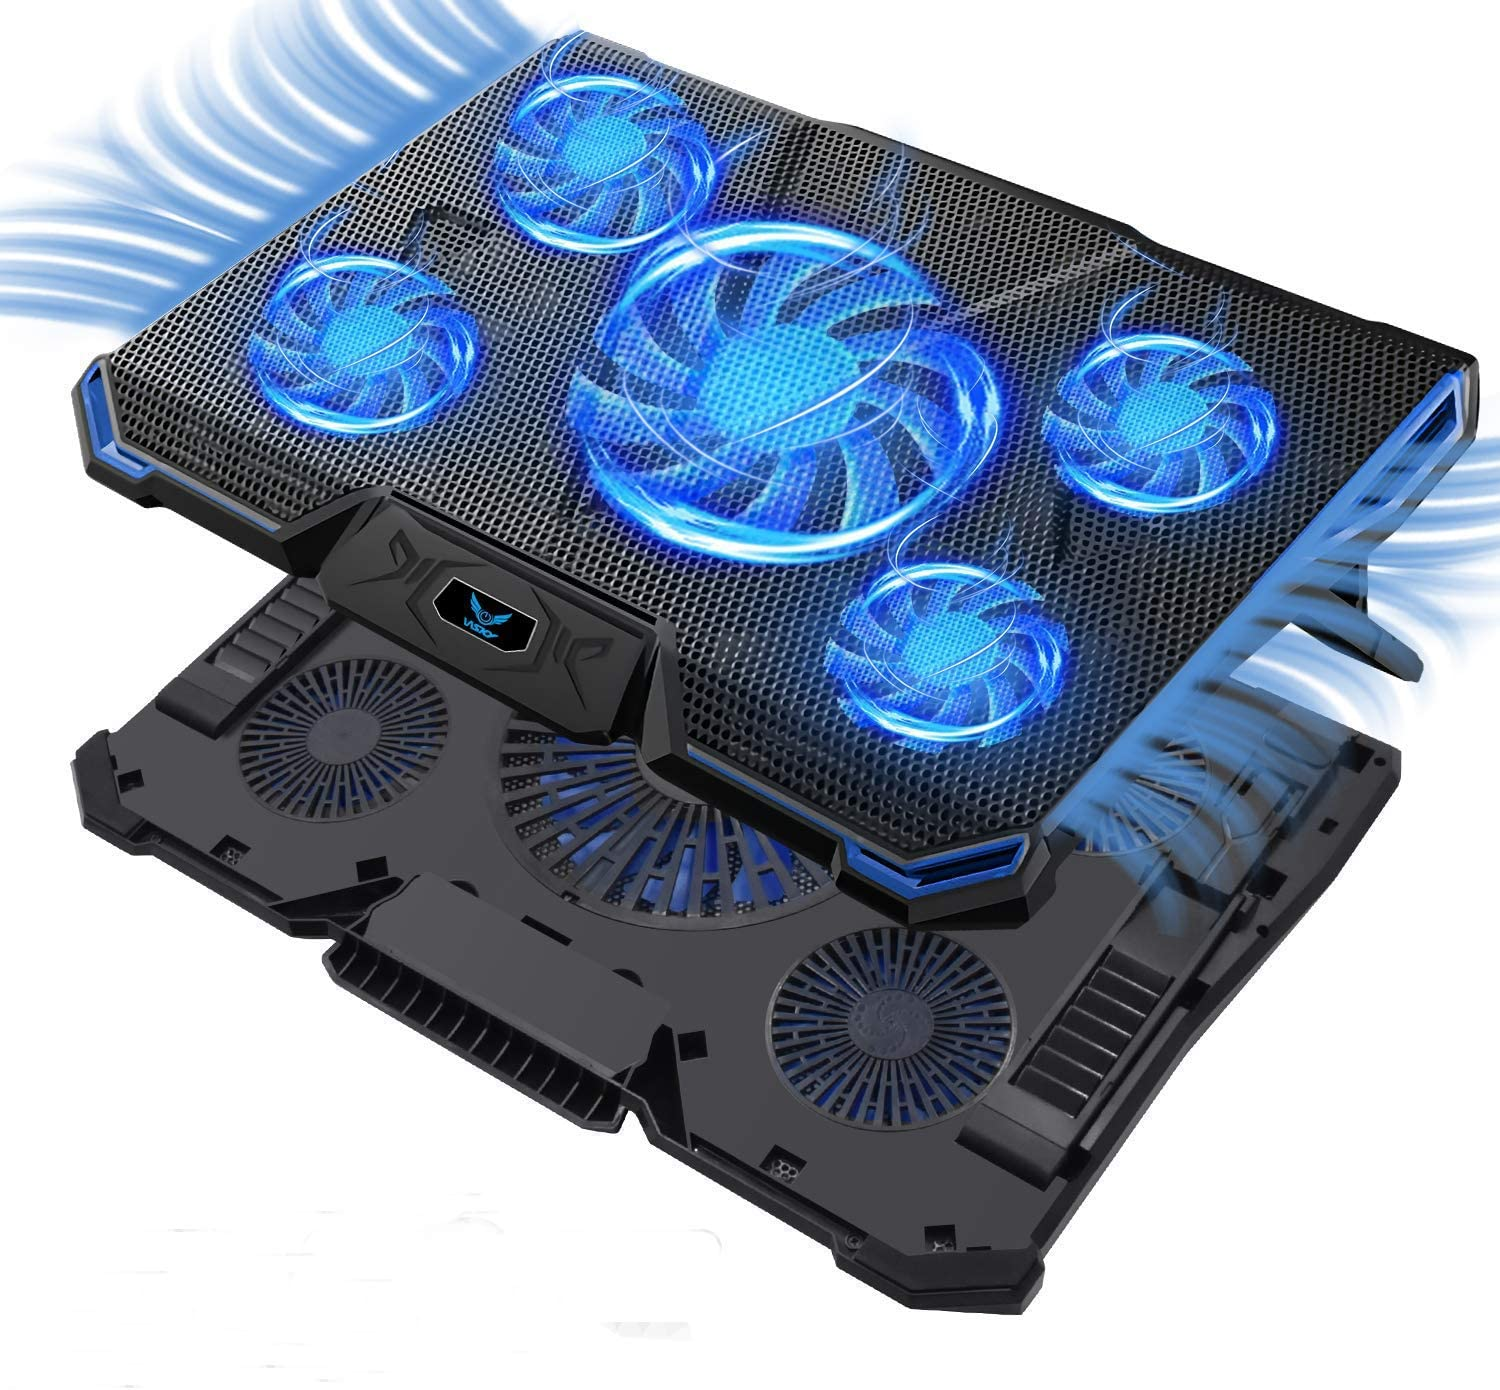 Laptop Cooler Cooling Pad Ultra Slim Portable Stand LED 6 Fans USB Powered SG